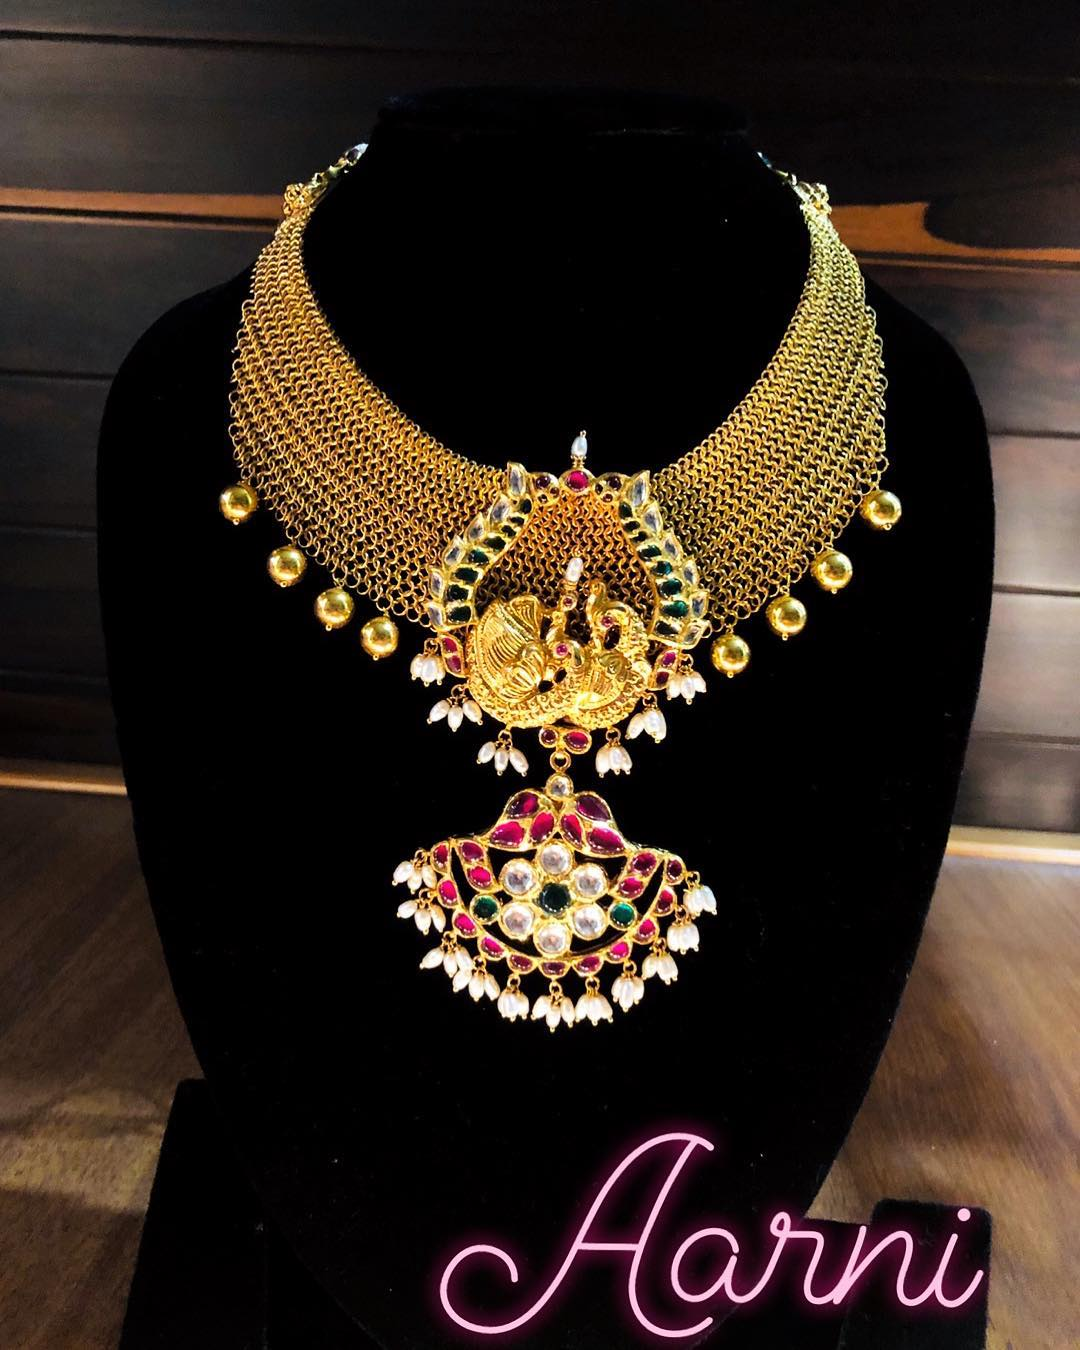 Decorative Gold Necklace From Aarni By Shravani